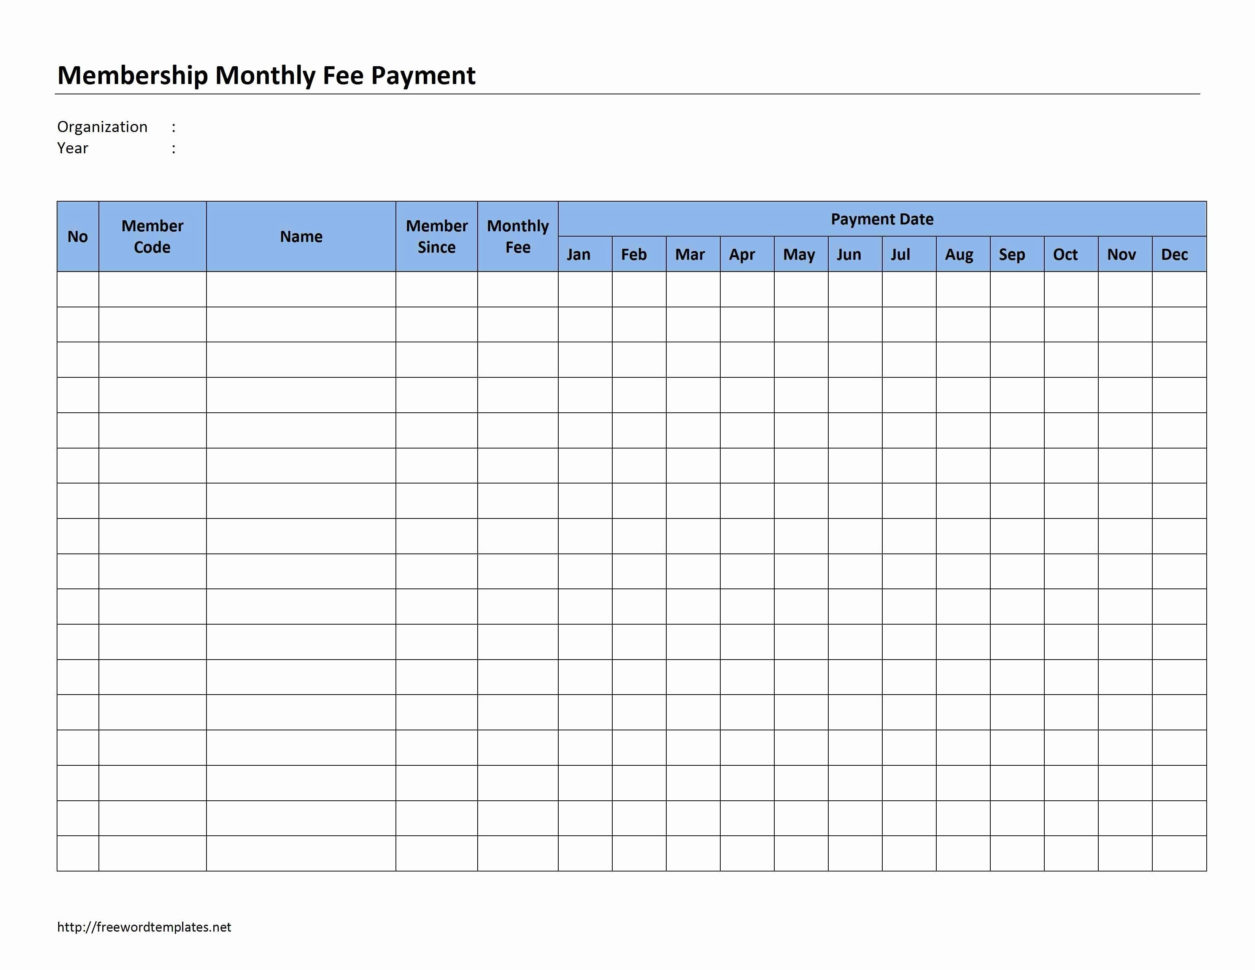 Business Expense Report Template Excel Brettkahr Expense Invoice With Business Expense Report Template Excel